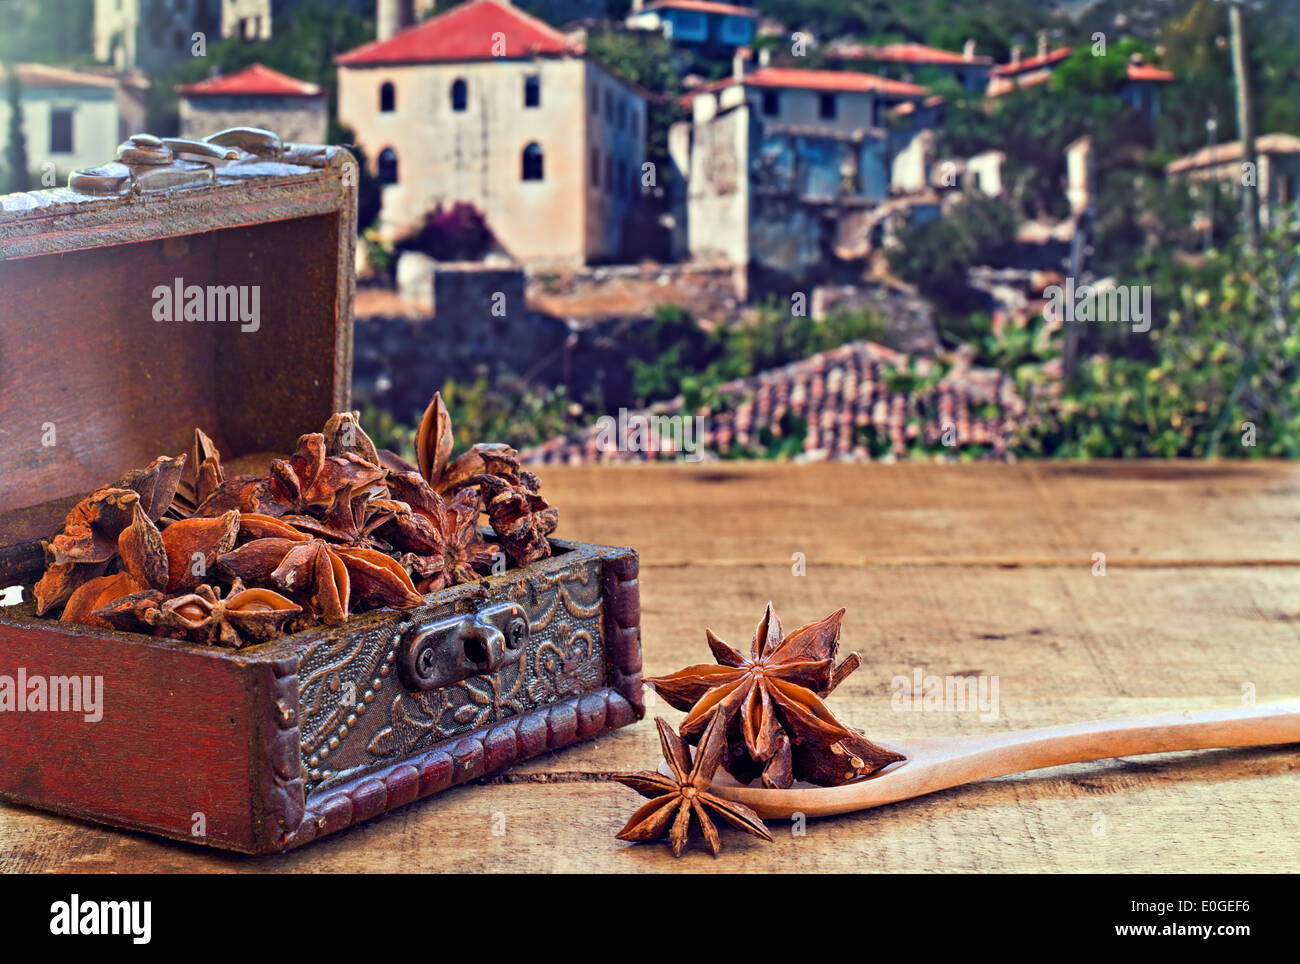 Star Anise Spice On Rustic Wooden Table With Old Countryside